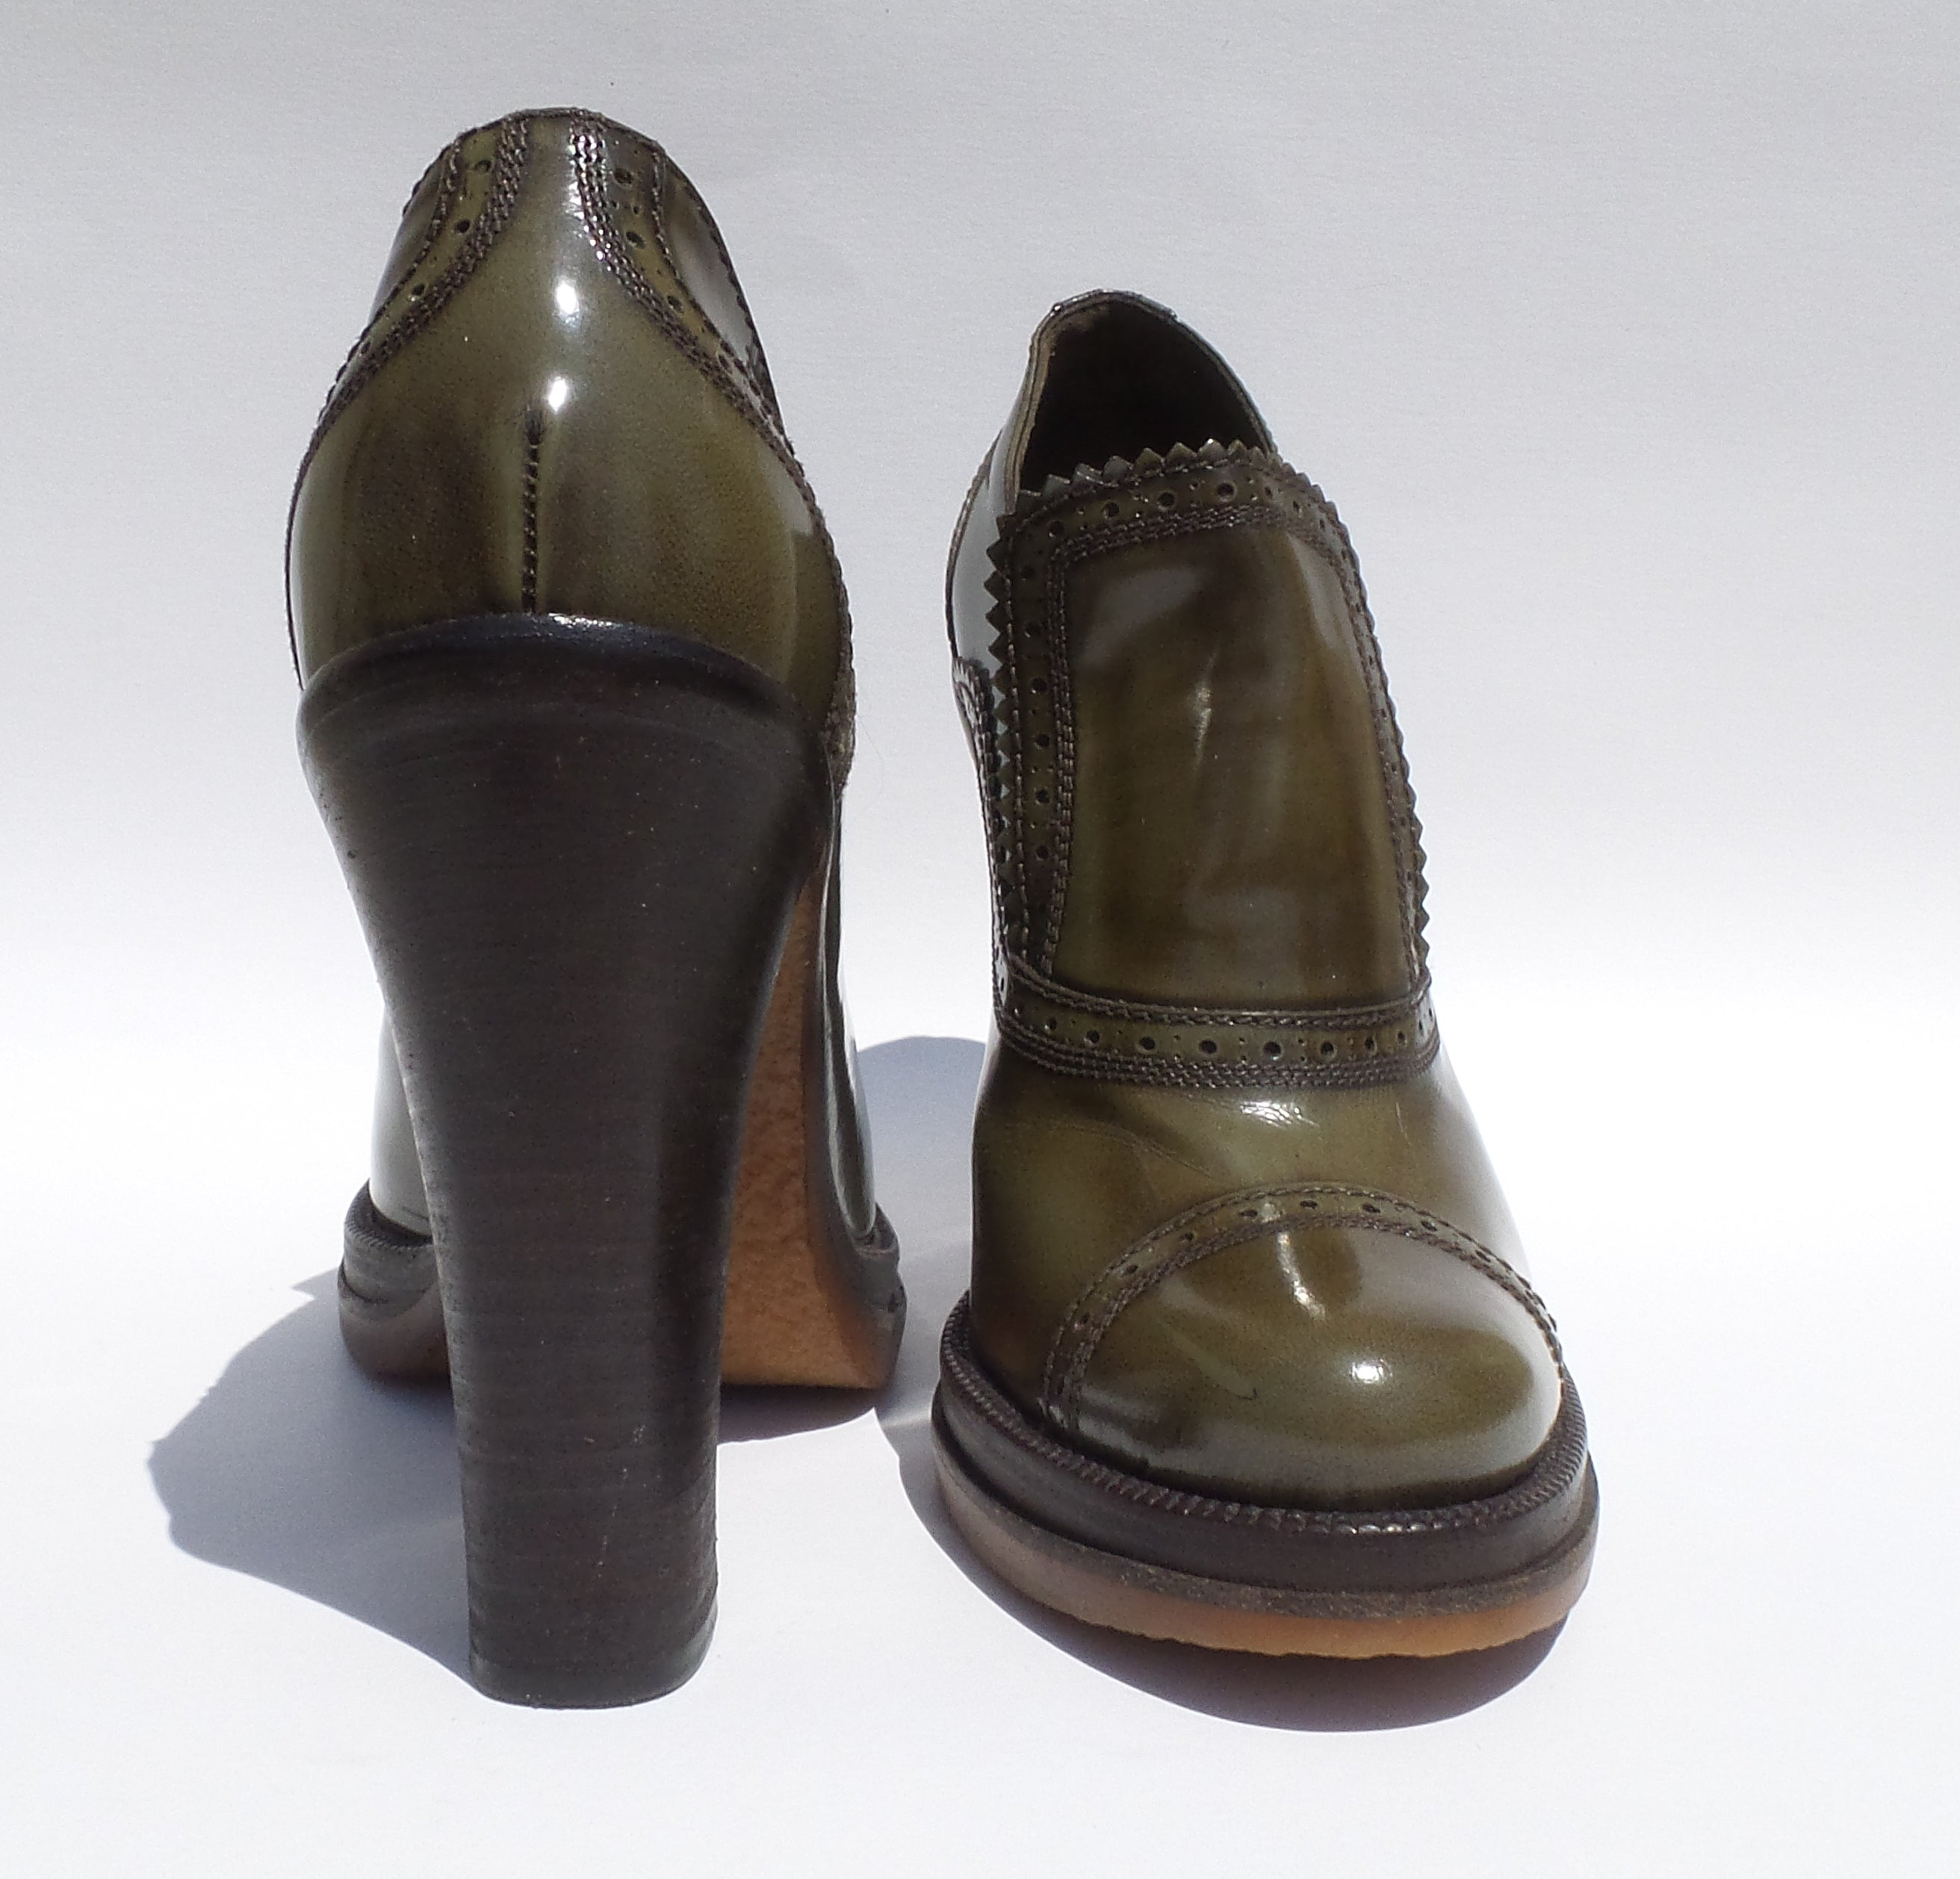 'Sold' LOUIS VUITTON Olive Green Polished Leather Block Heel Platform Bootie Pumps 39.5